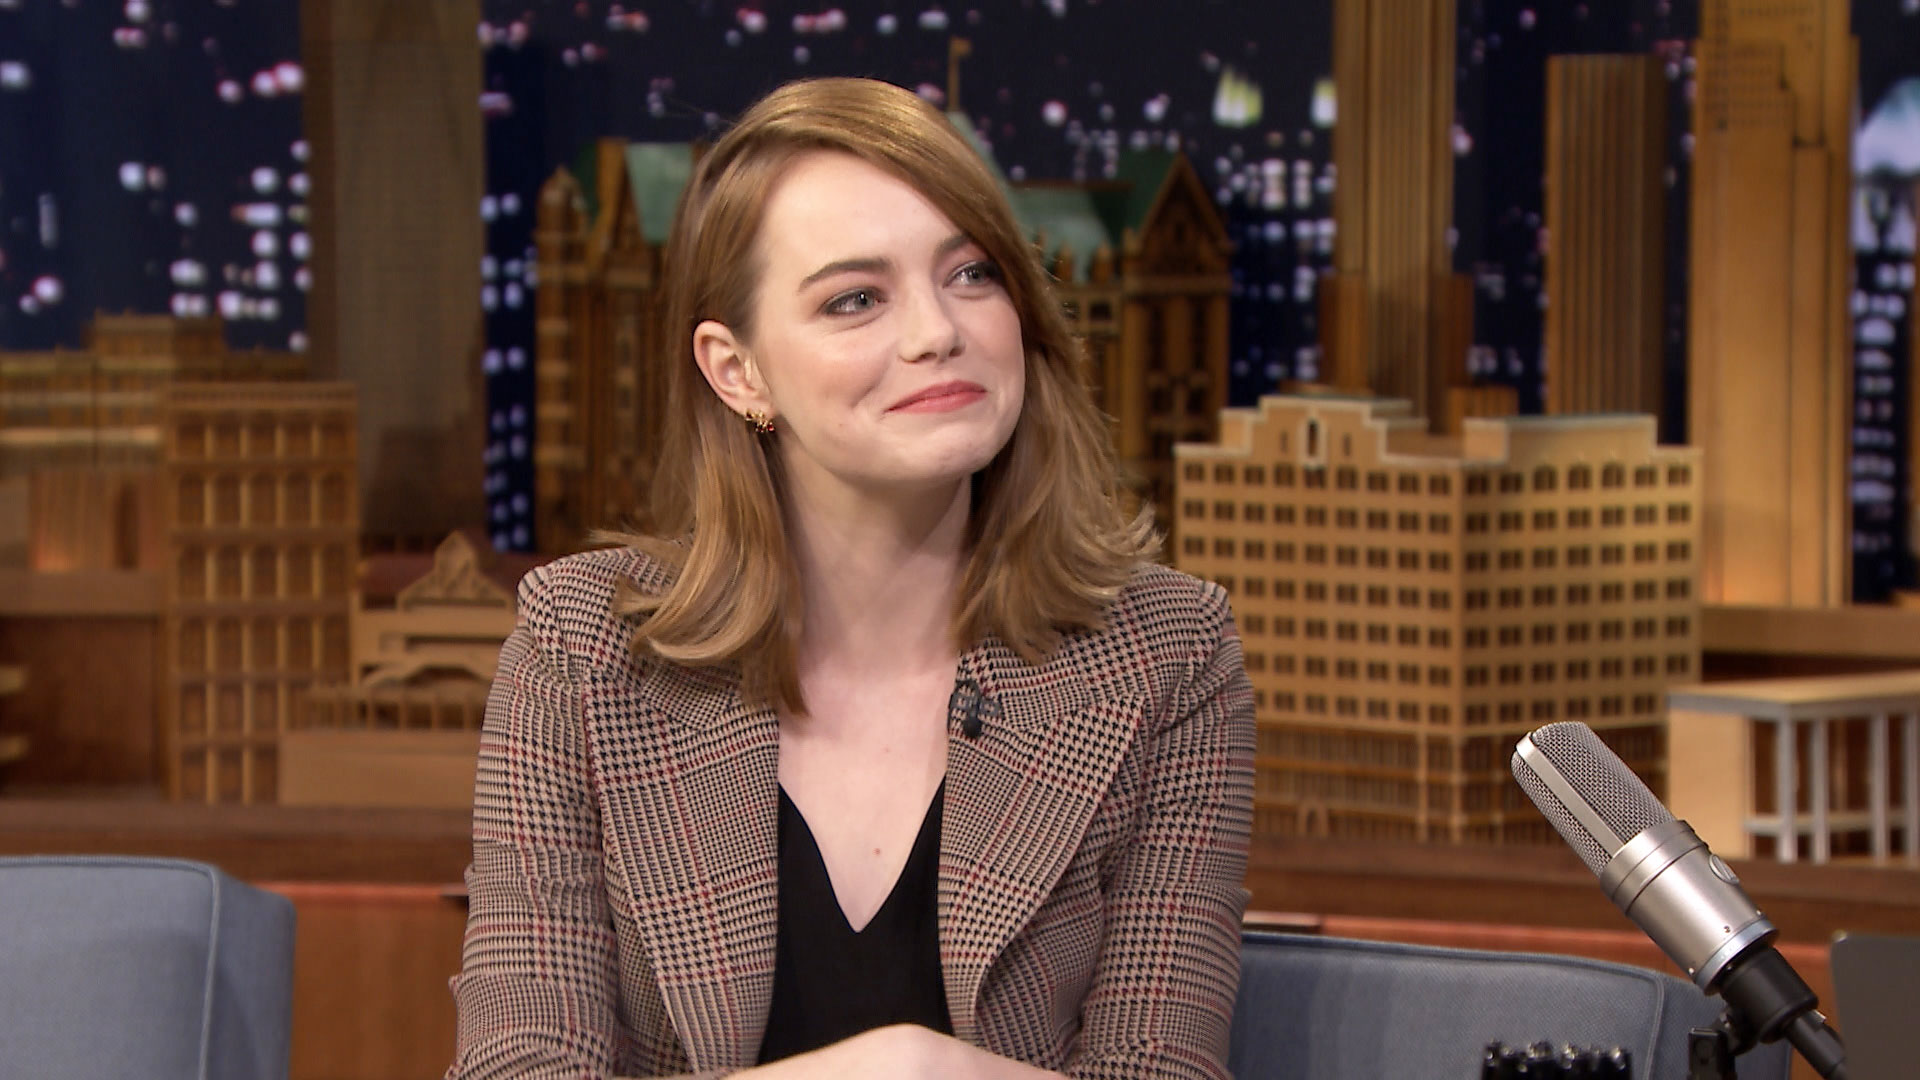 Emma Stone Played Tambourine for Prince with a Bloody Foot